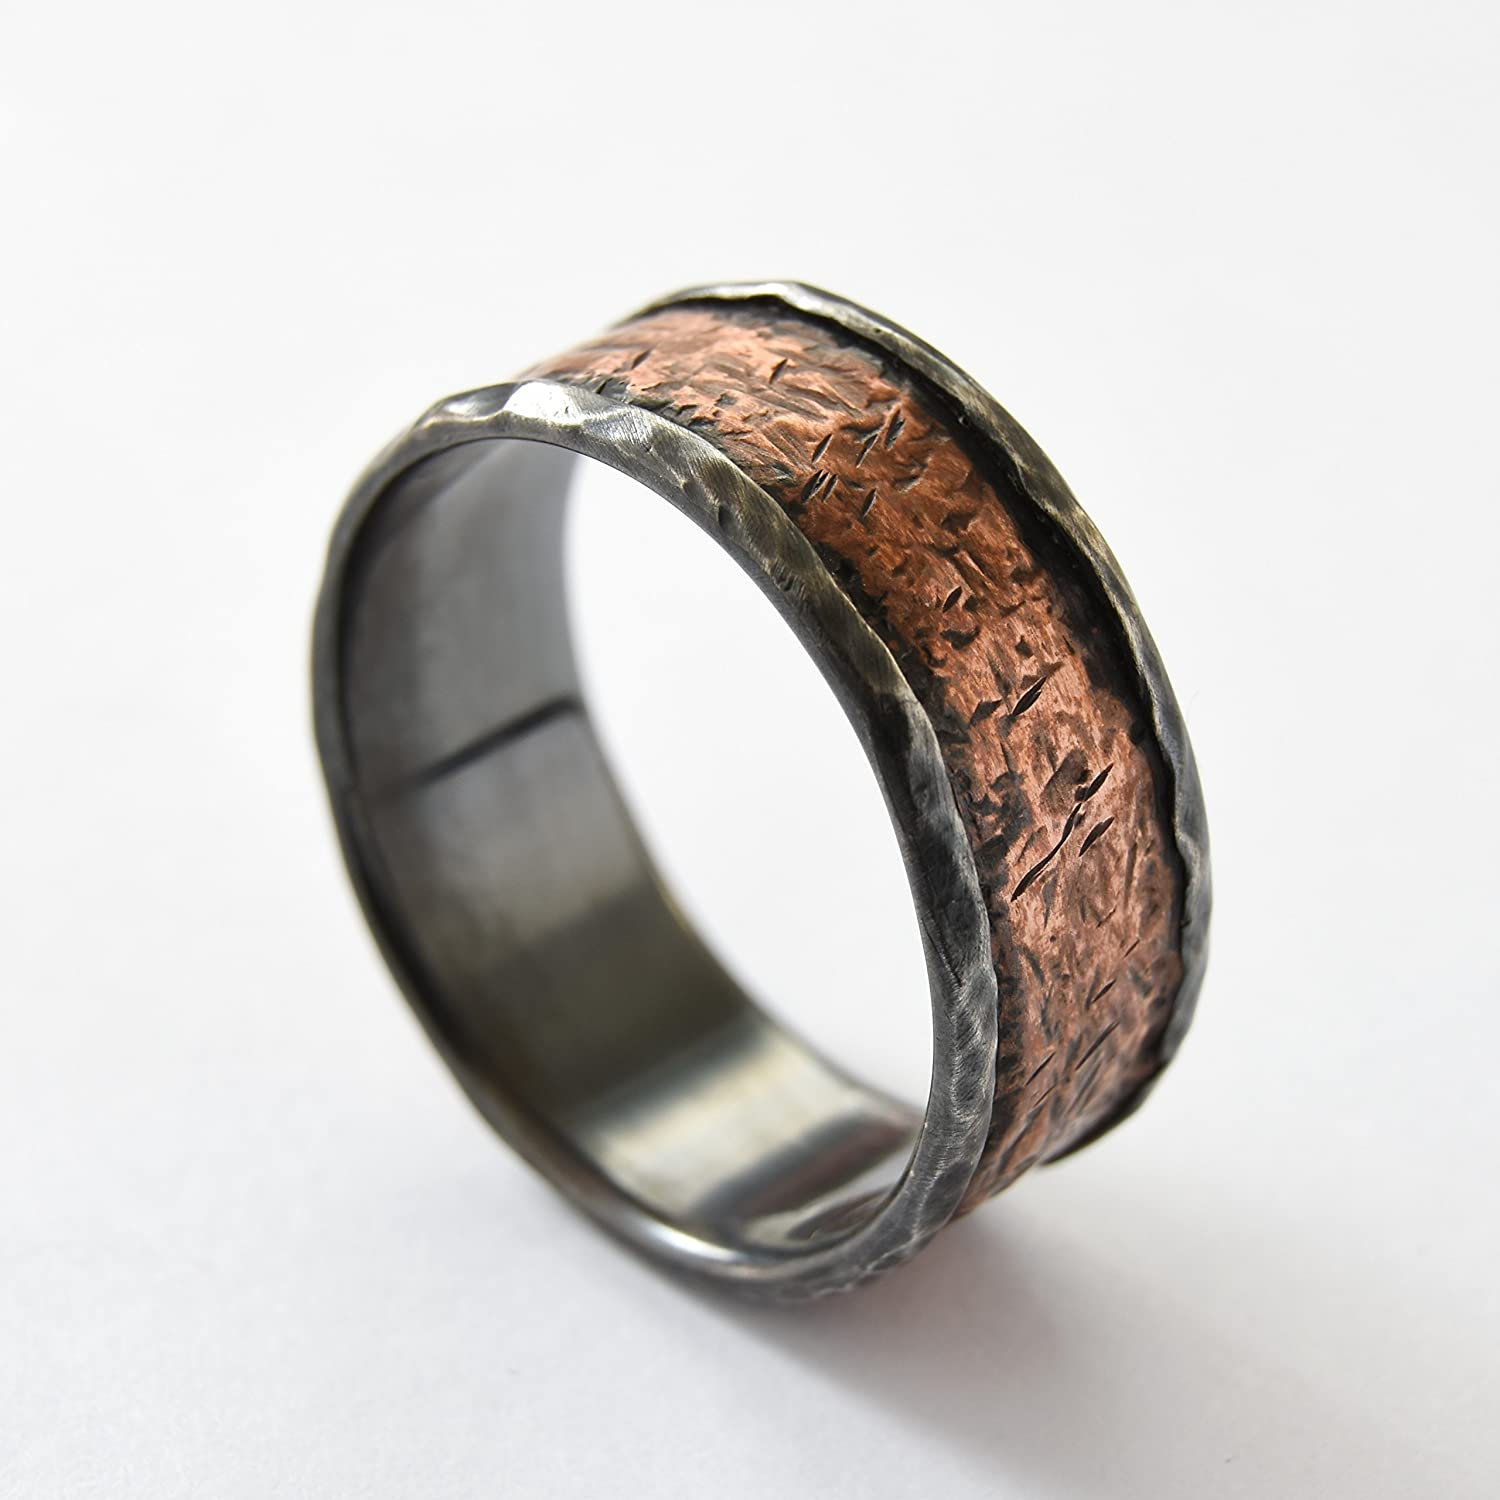 Rustic copper silver band, Oxidized Silver, Copper men band, Wide Infinity band, men wedding band, everyday ring, mixed metals band, Durable ring for mend